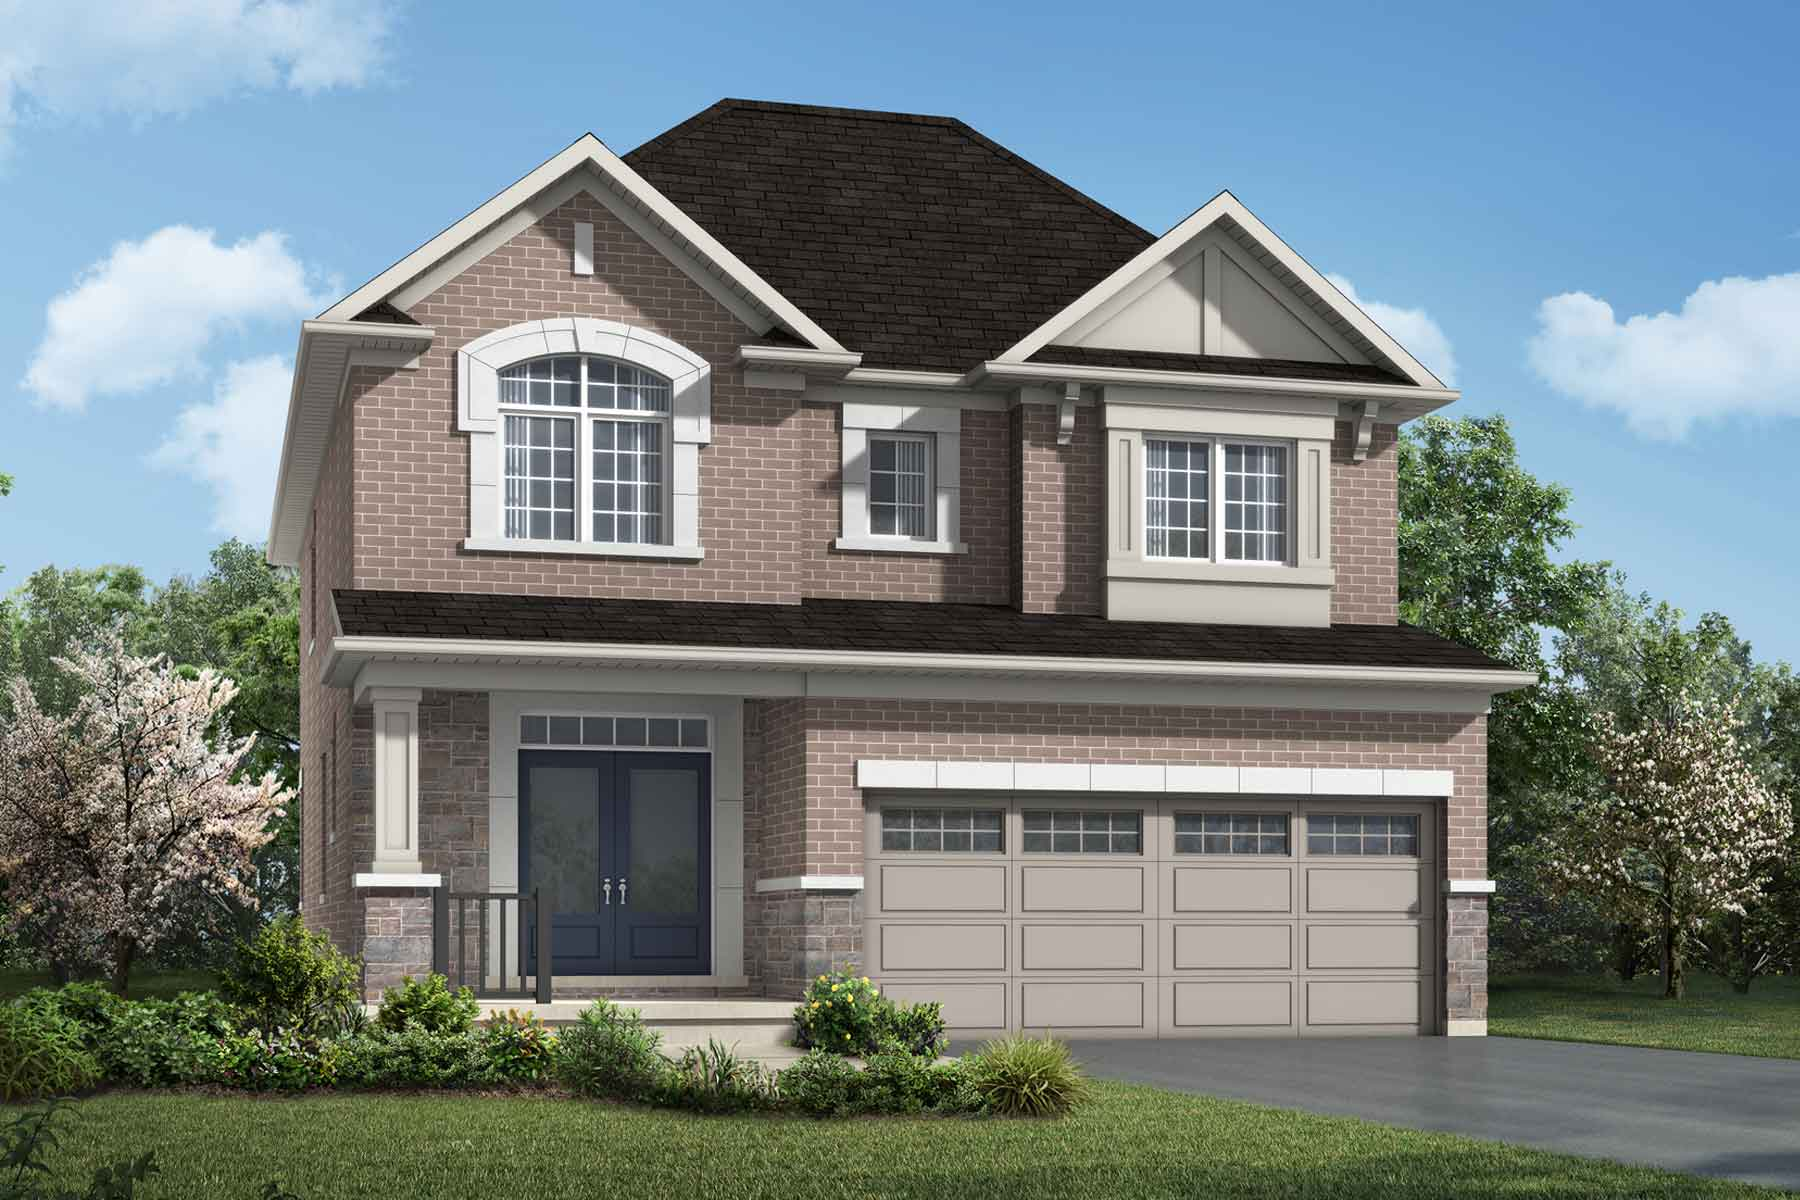 The Brooksdale Plan traditional_southestates_brooksdale at Wildflower Crossing in Kitchener Ontario by Mattamy Homes